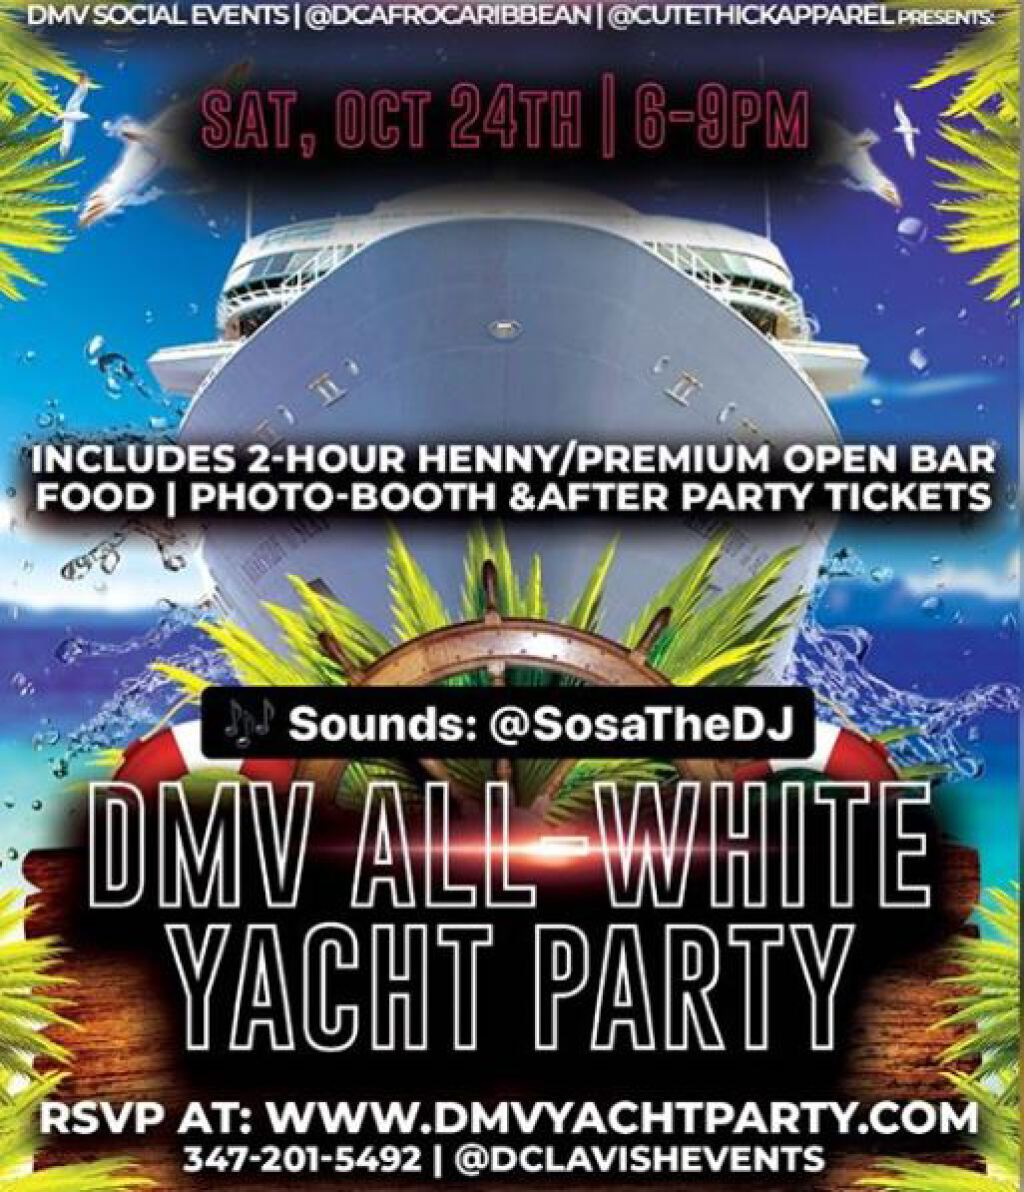 DMV All White Yacht Party flyer or graphic.